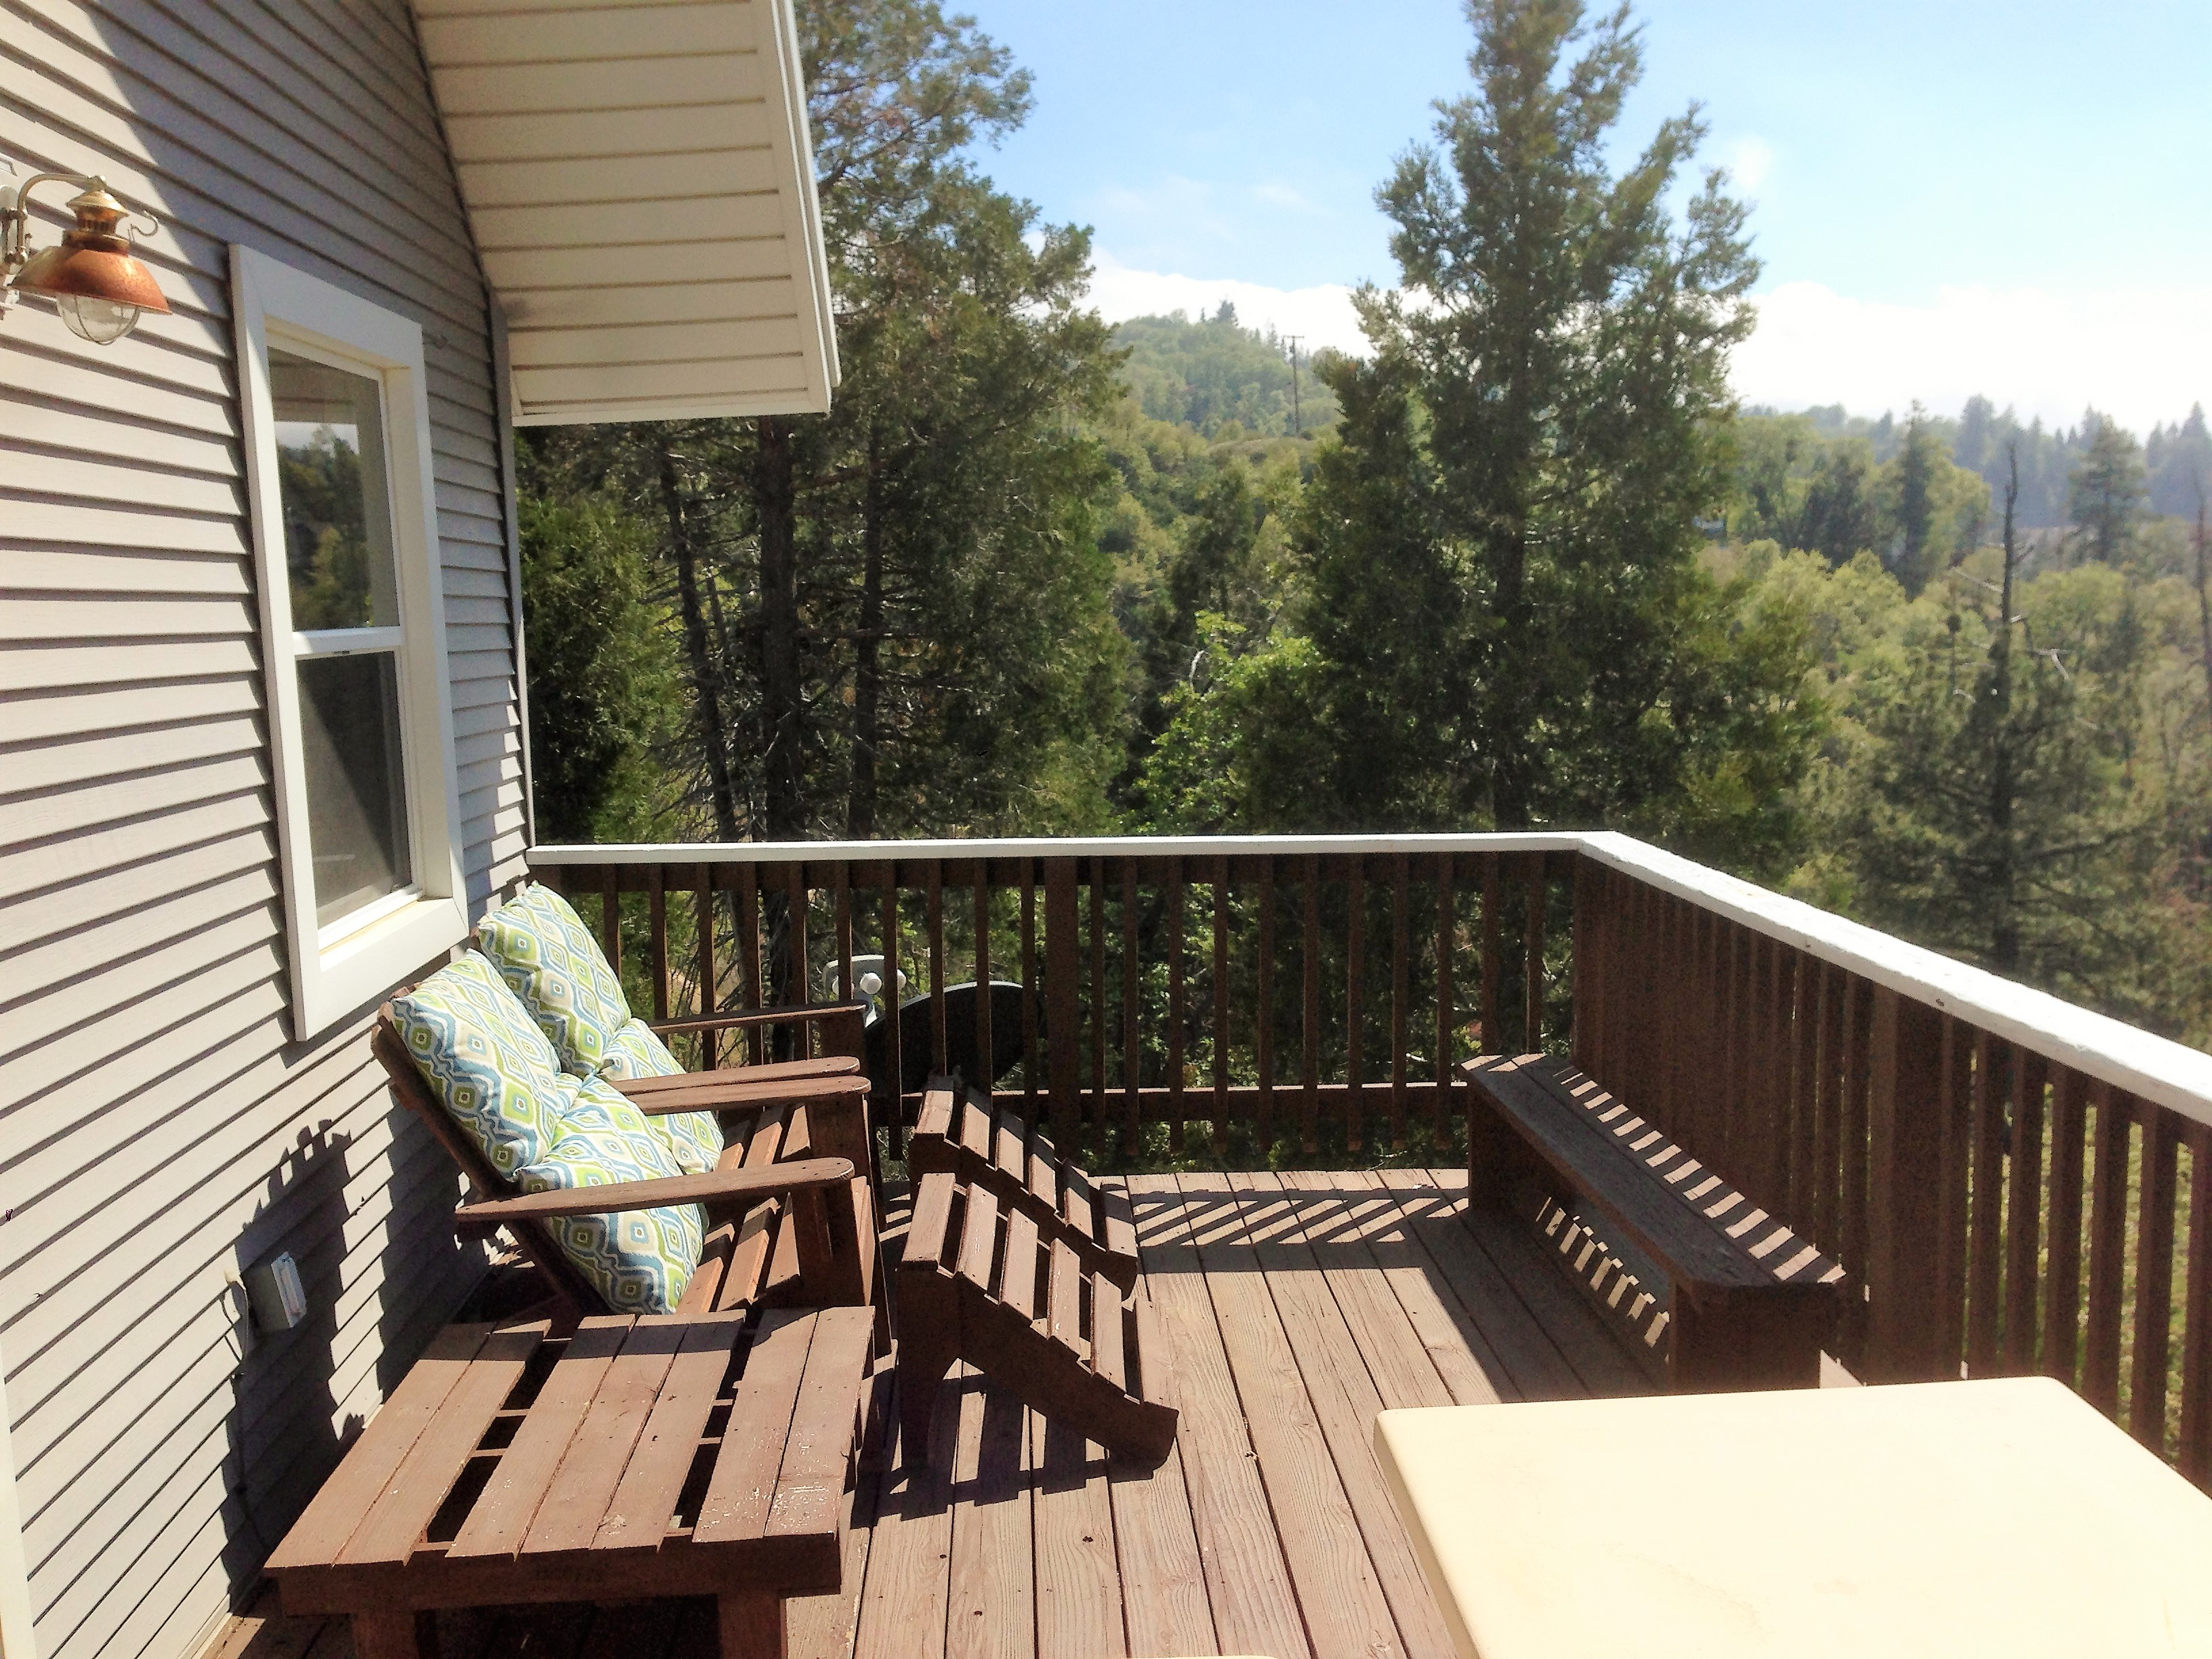 cabins rentals near lodging action paragon links cabin soleil du vacation chalet denver colorado